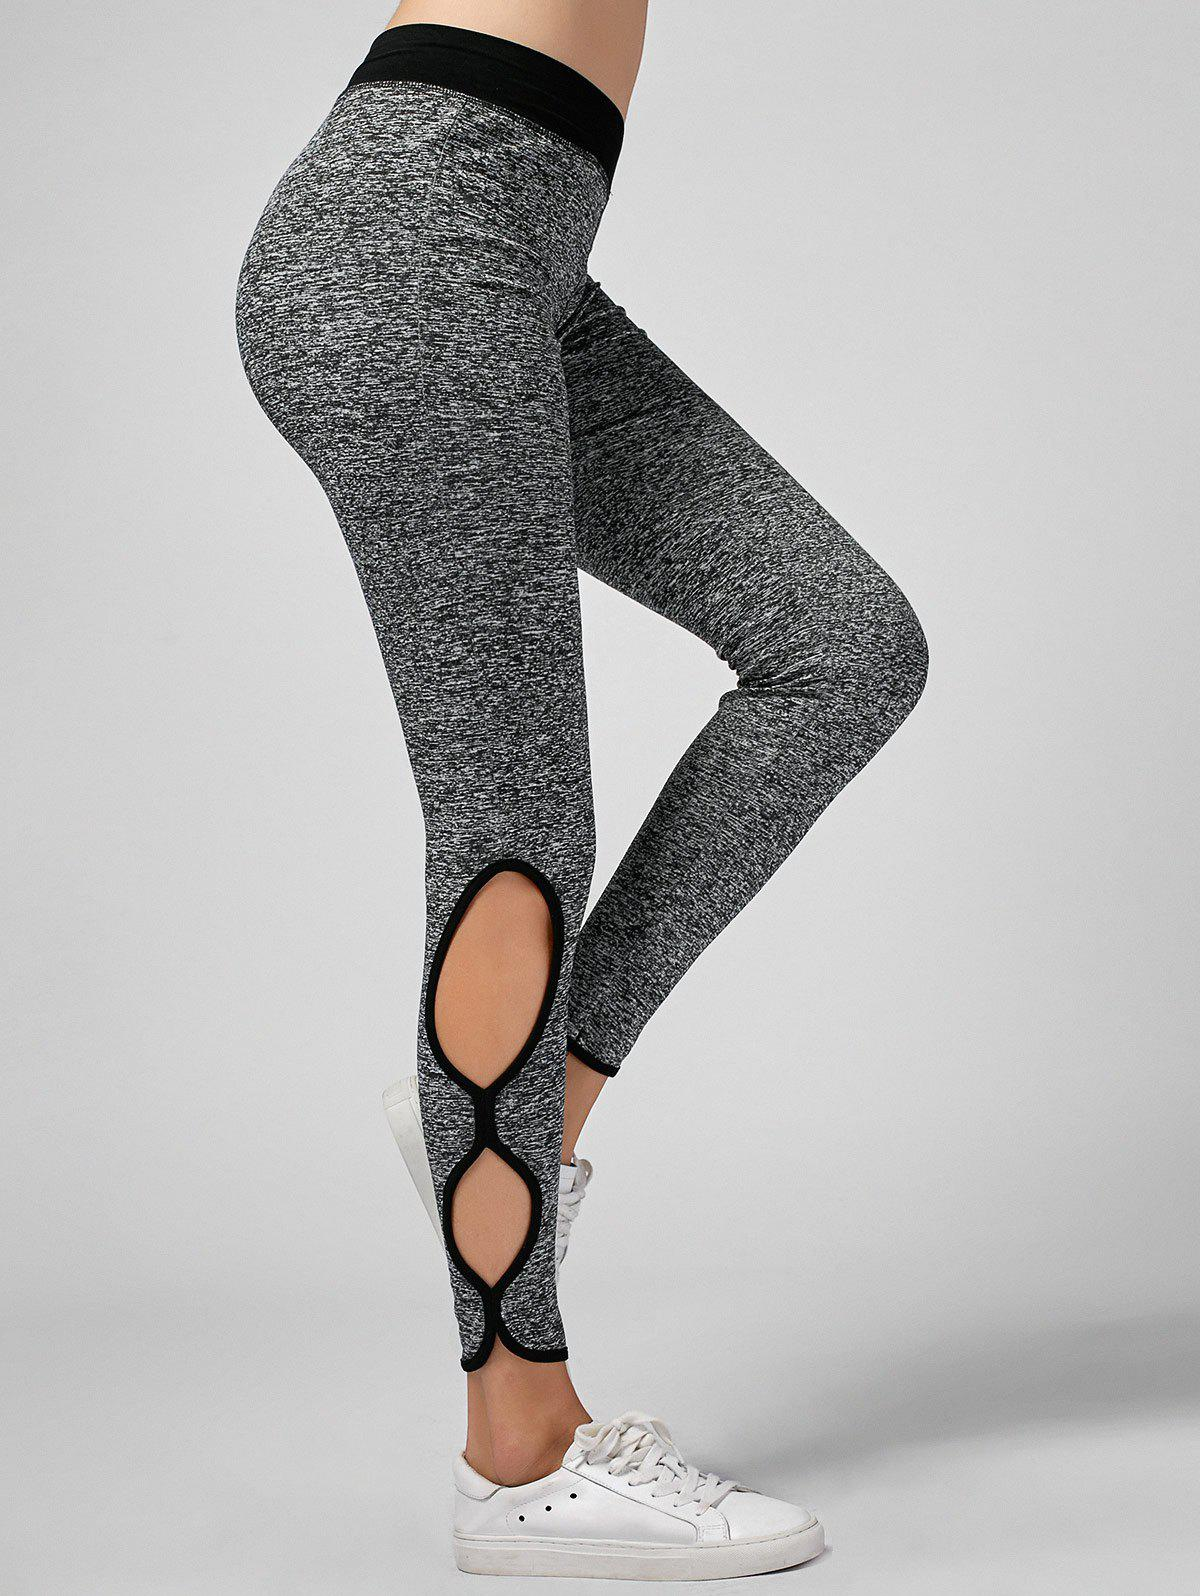 Cut Out Spaced Dyed Leggings - GRAY XL